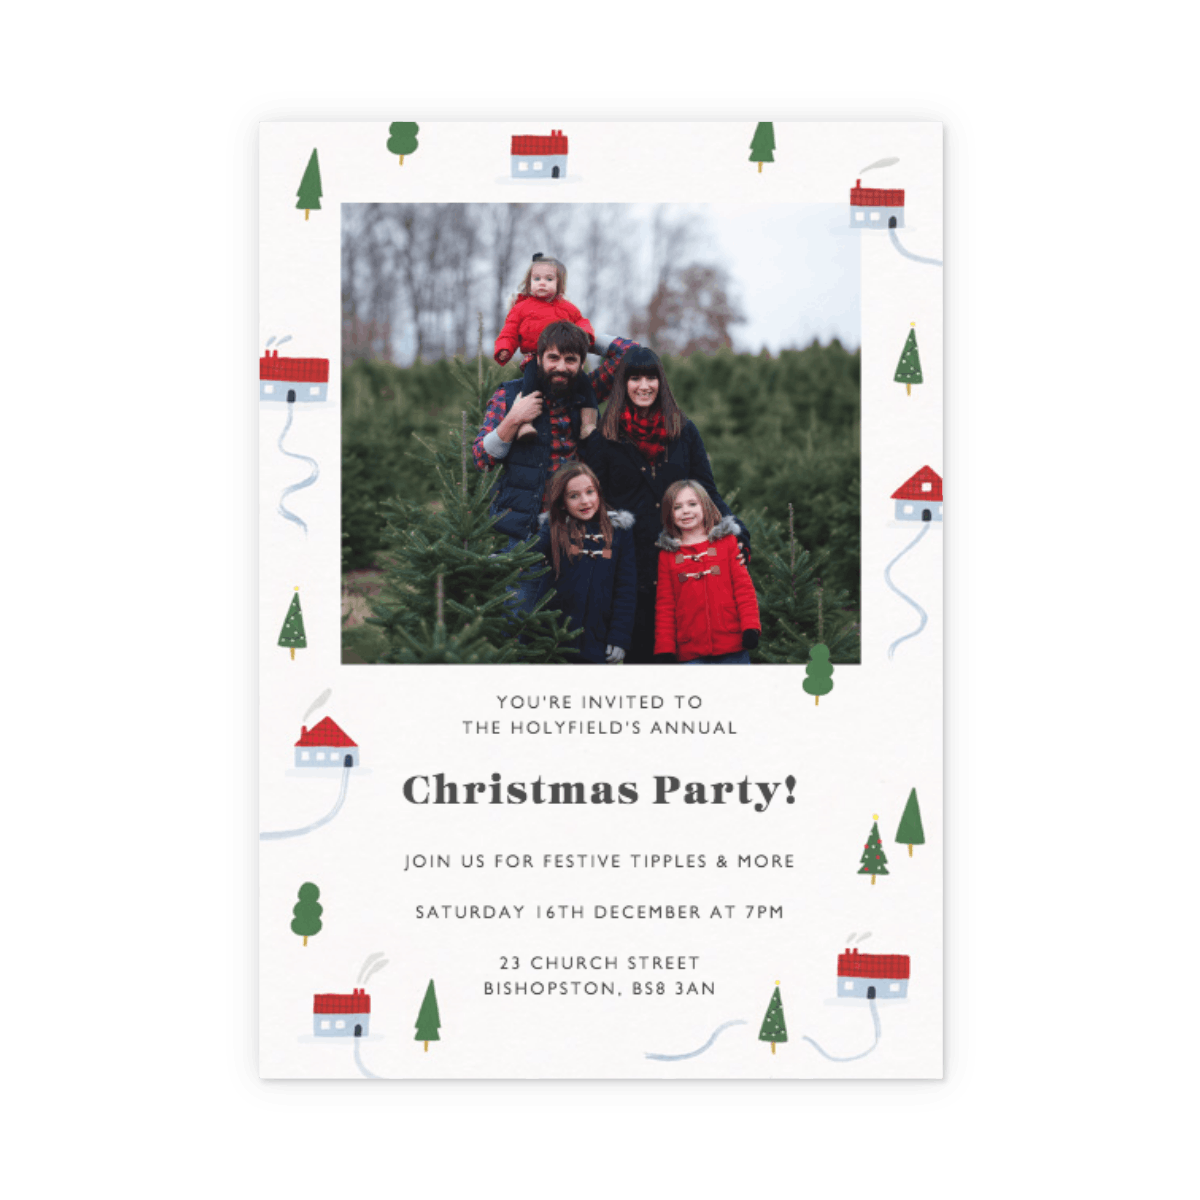 Https%3a%2f%2fwww.papier.com%2fproduct image%2f29803%2f4%2fchristmas village 7514 front 1508753035.png?ixlib=rb 1.1